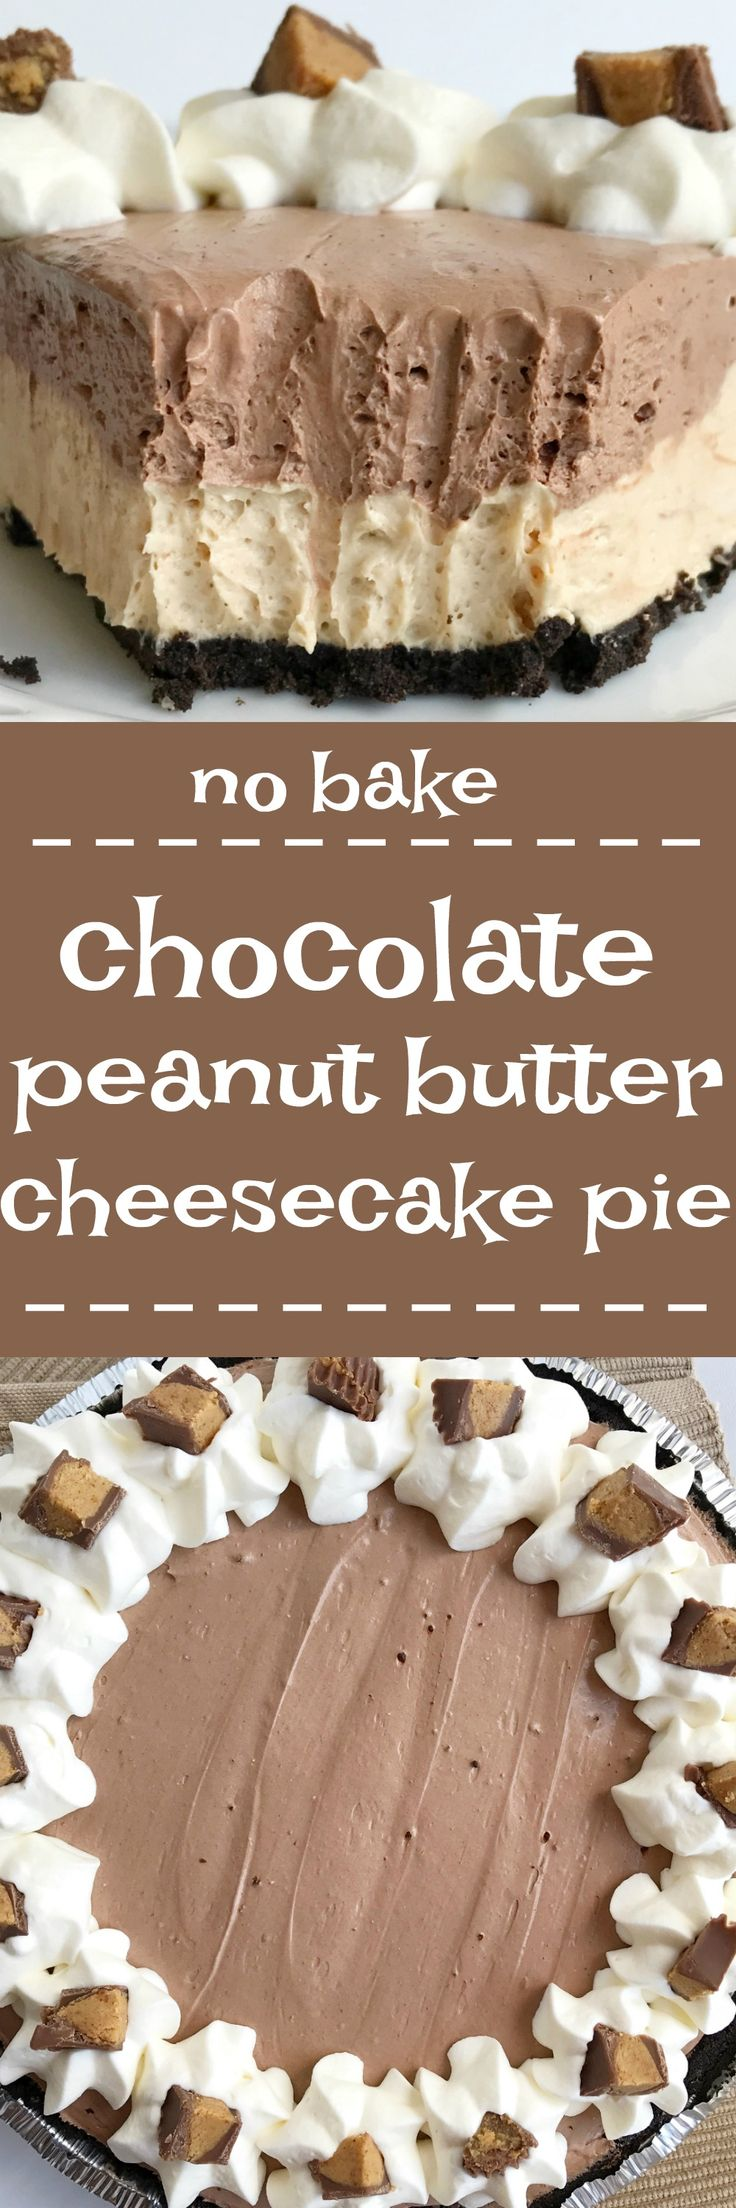 You won't believe how easy this {no bake} chocolate peanut butter cheesecake pie is to make! Uses a pre-made Oreo crust, filled with a creamy peanut butter cheesecake, and then topped with a layer of creamy chocolate cheesecake. Only takes minutes to make and it's a crowd favorite. This pie tastes just like a Reese's peanut butter cup.